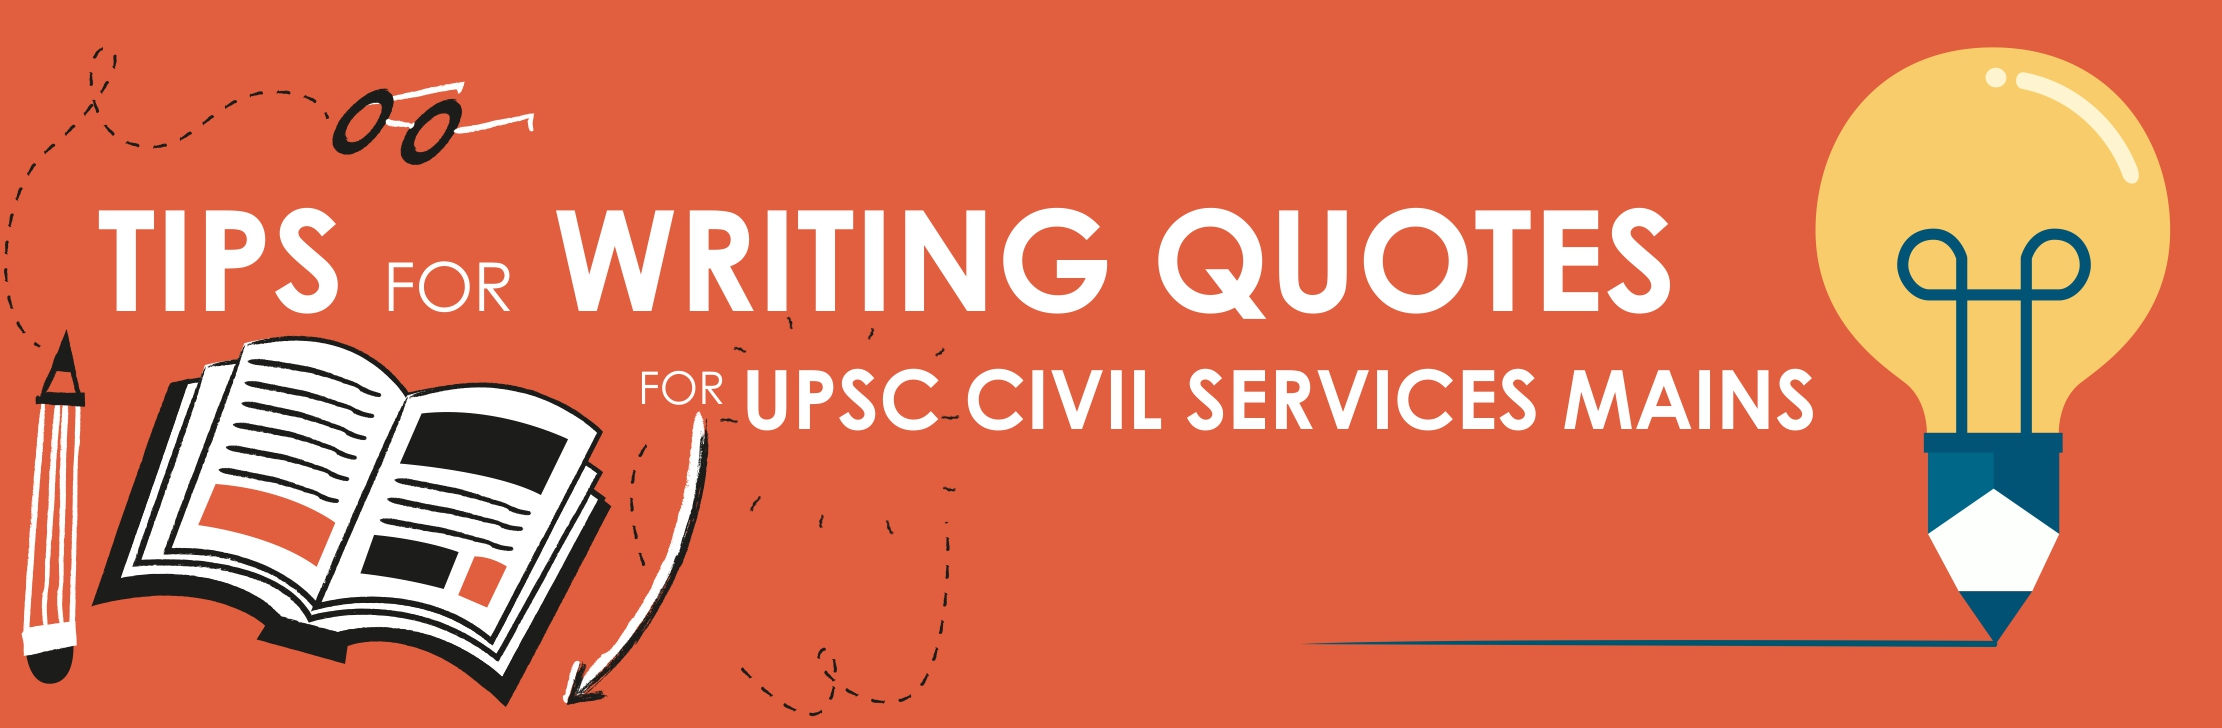 Tips for writing quotes for UPSC civil services mains